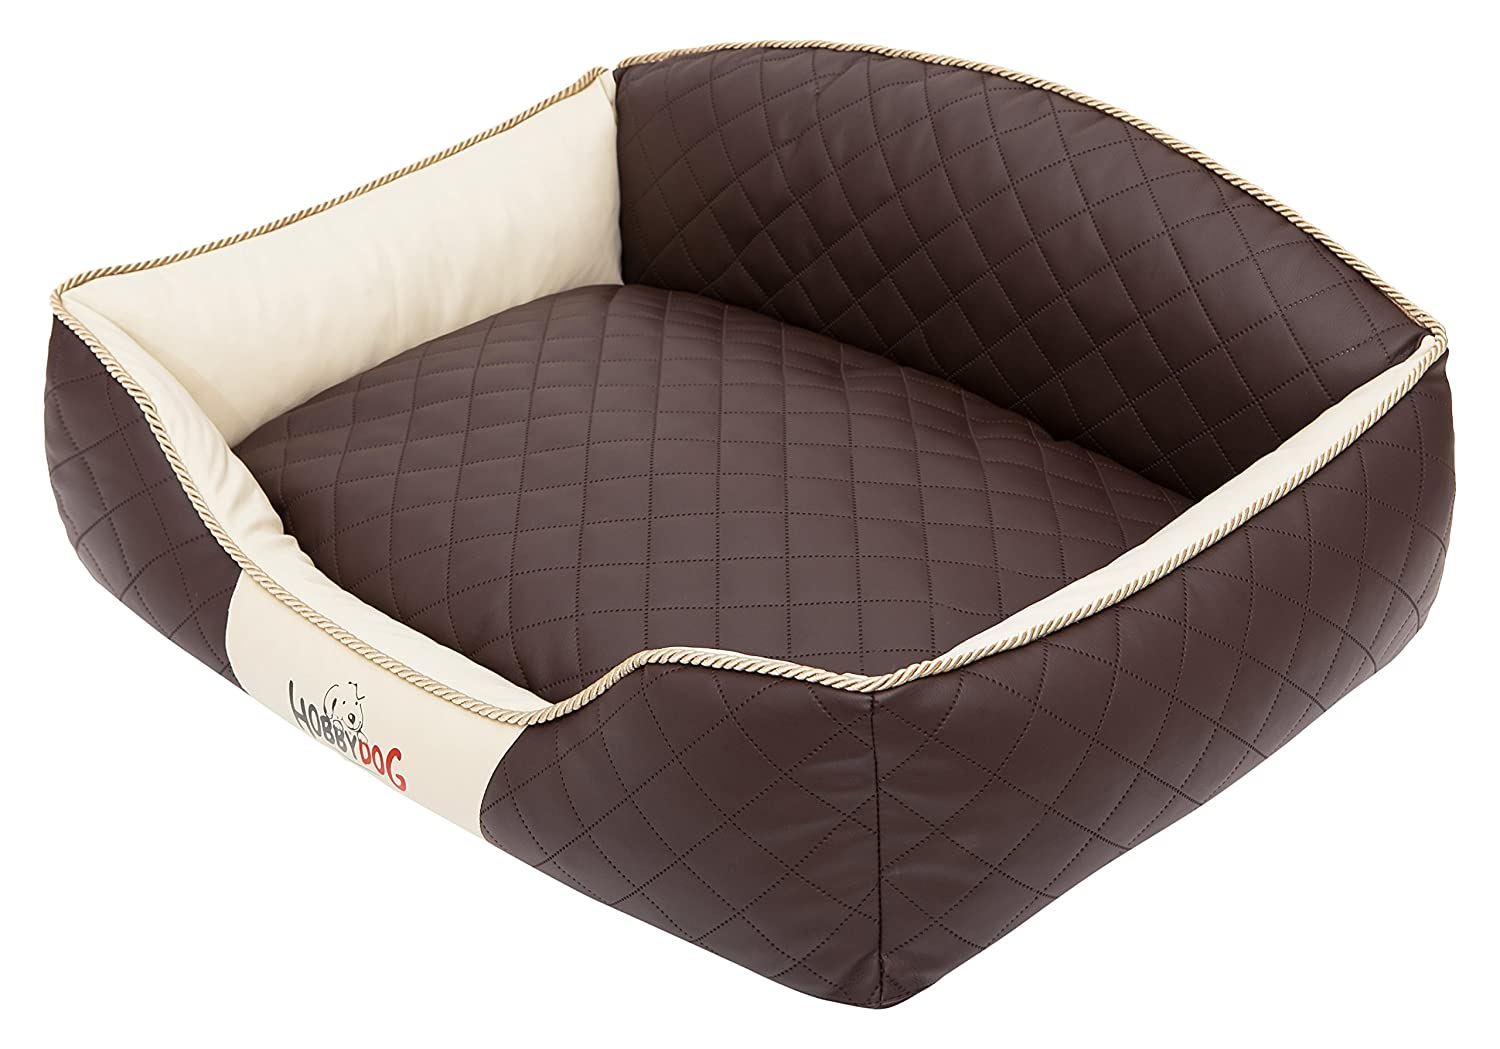 HOBBYDOG Elite Dog Bed, X-Large, Brown Beige Sides